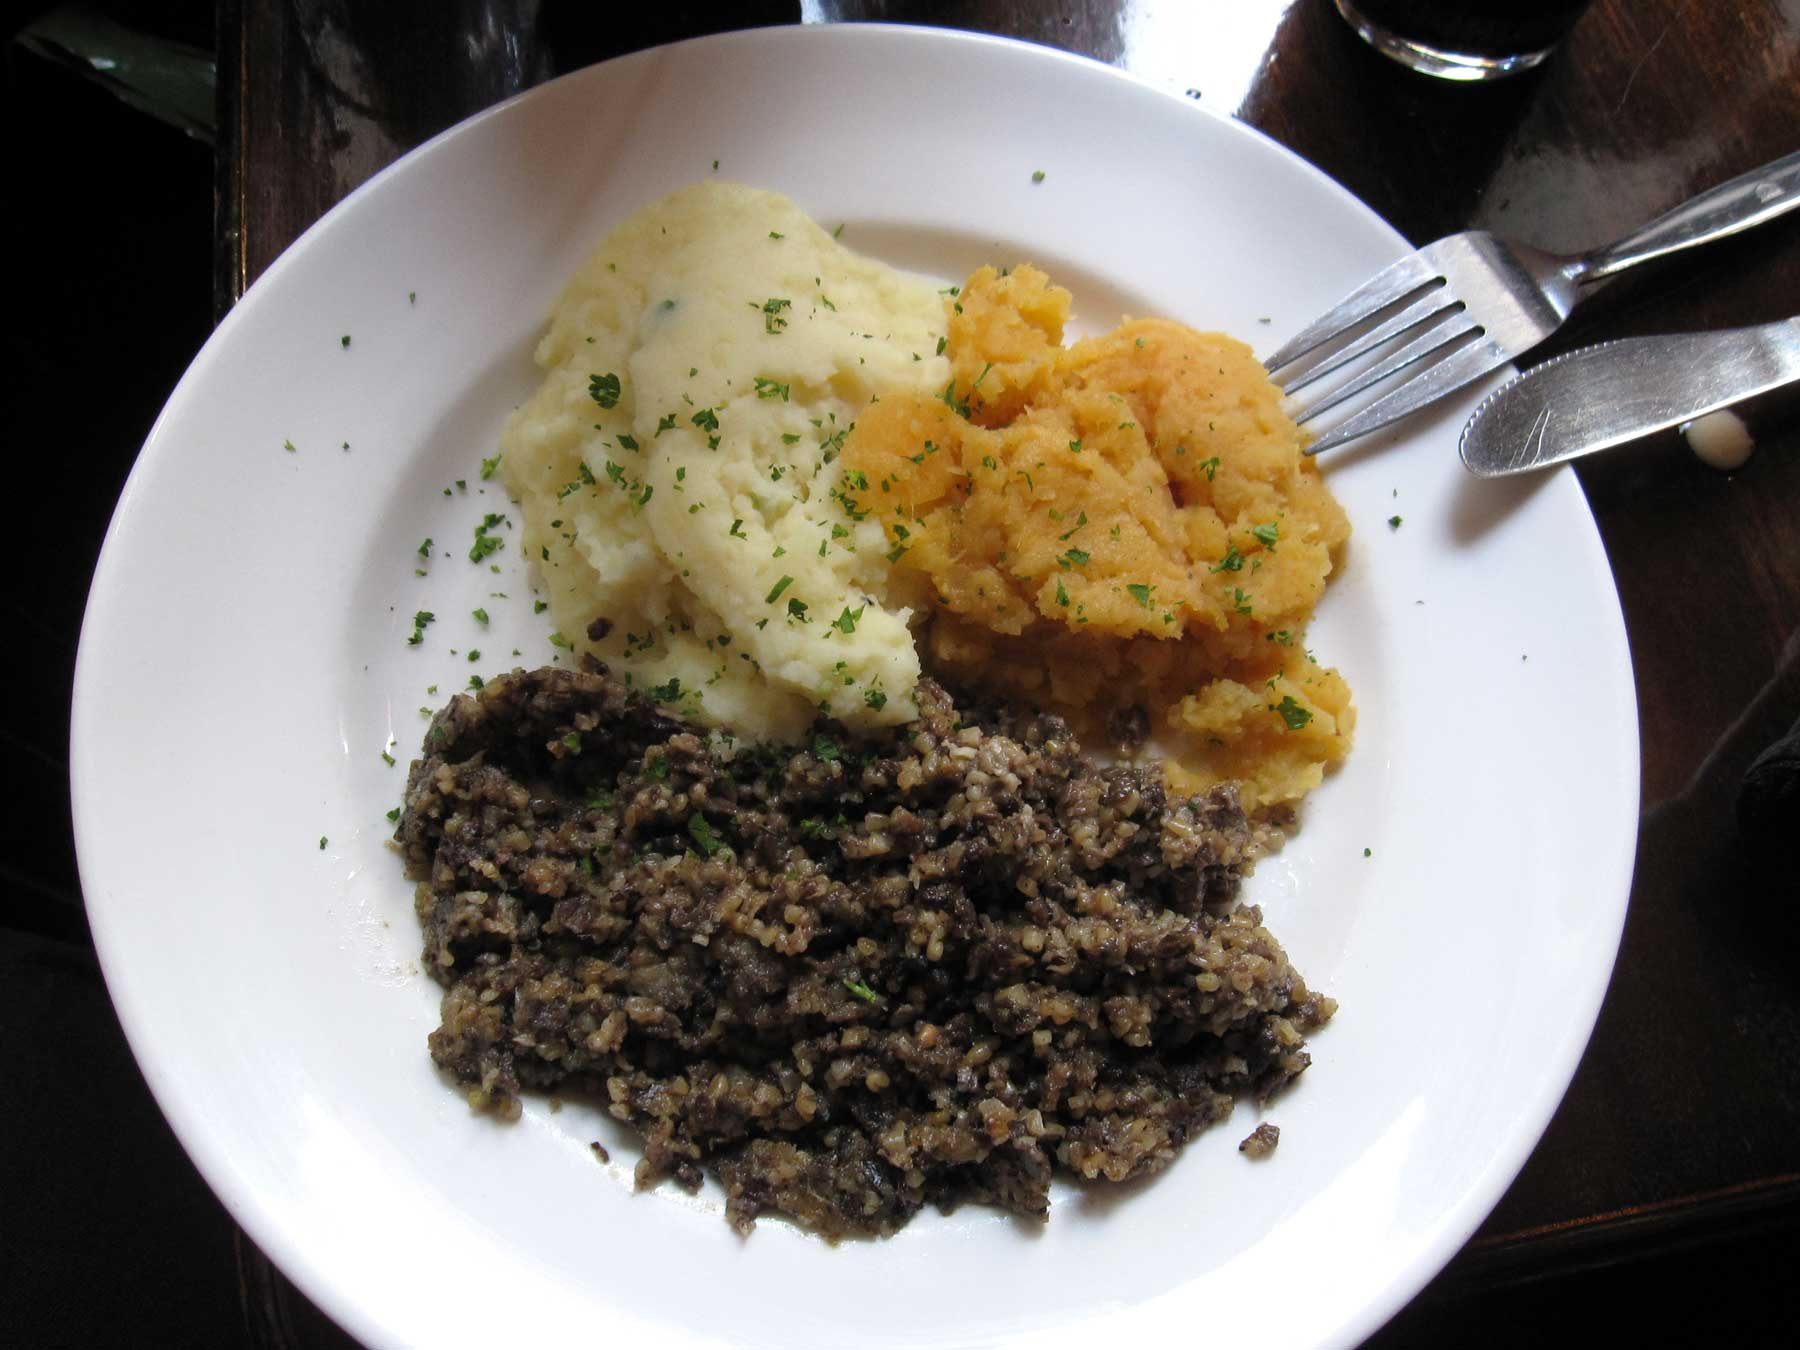 Haggish with mashed potato and mashed turnip